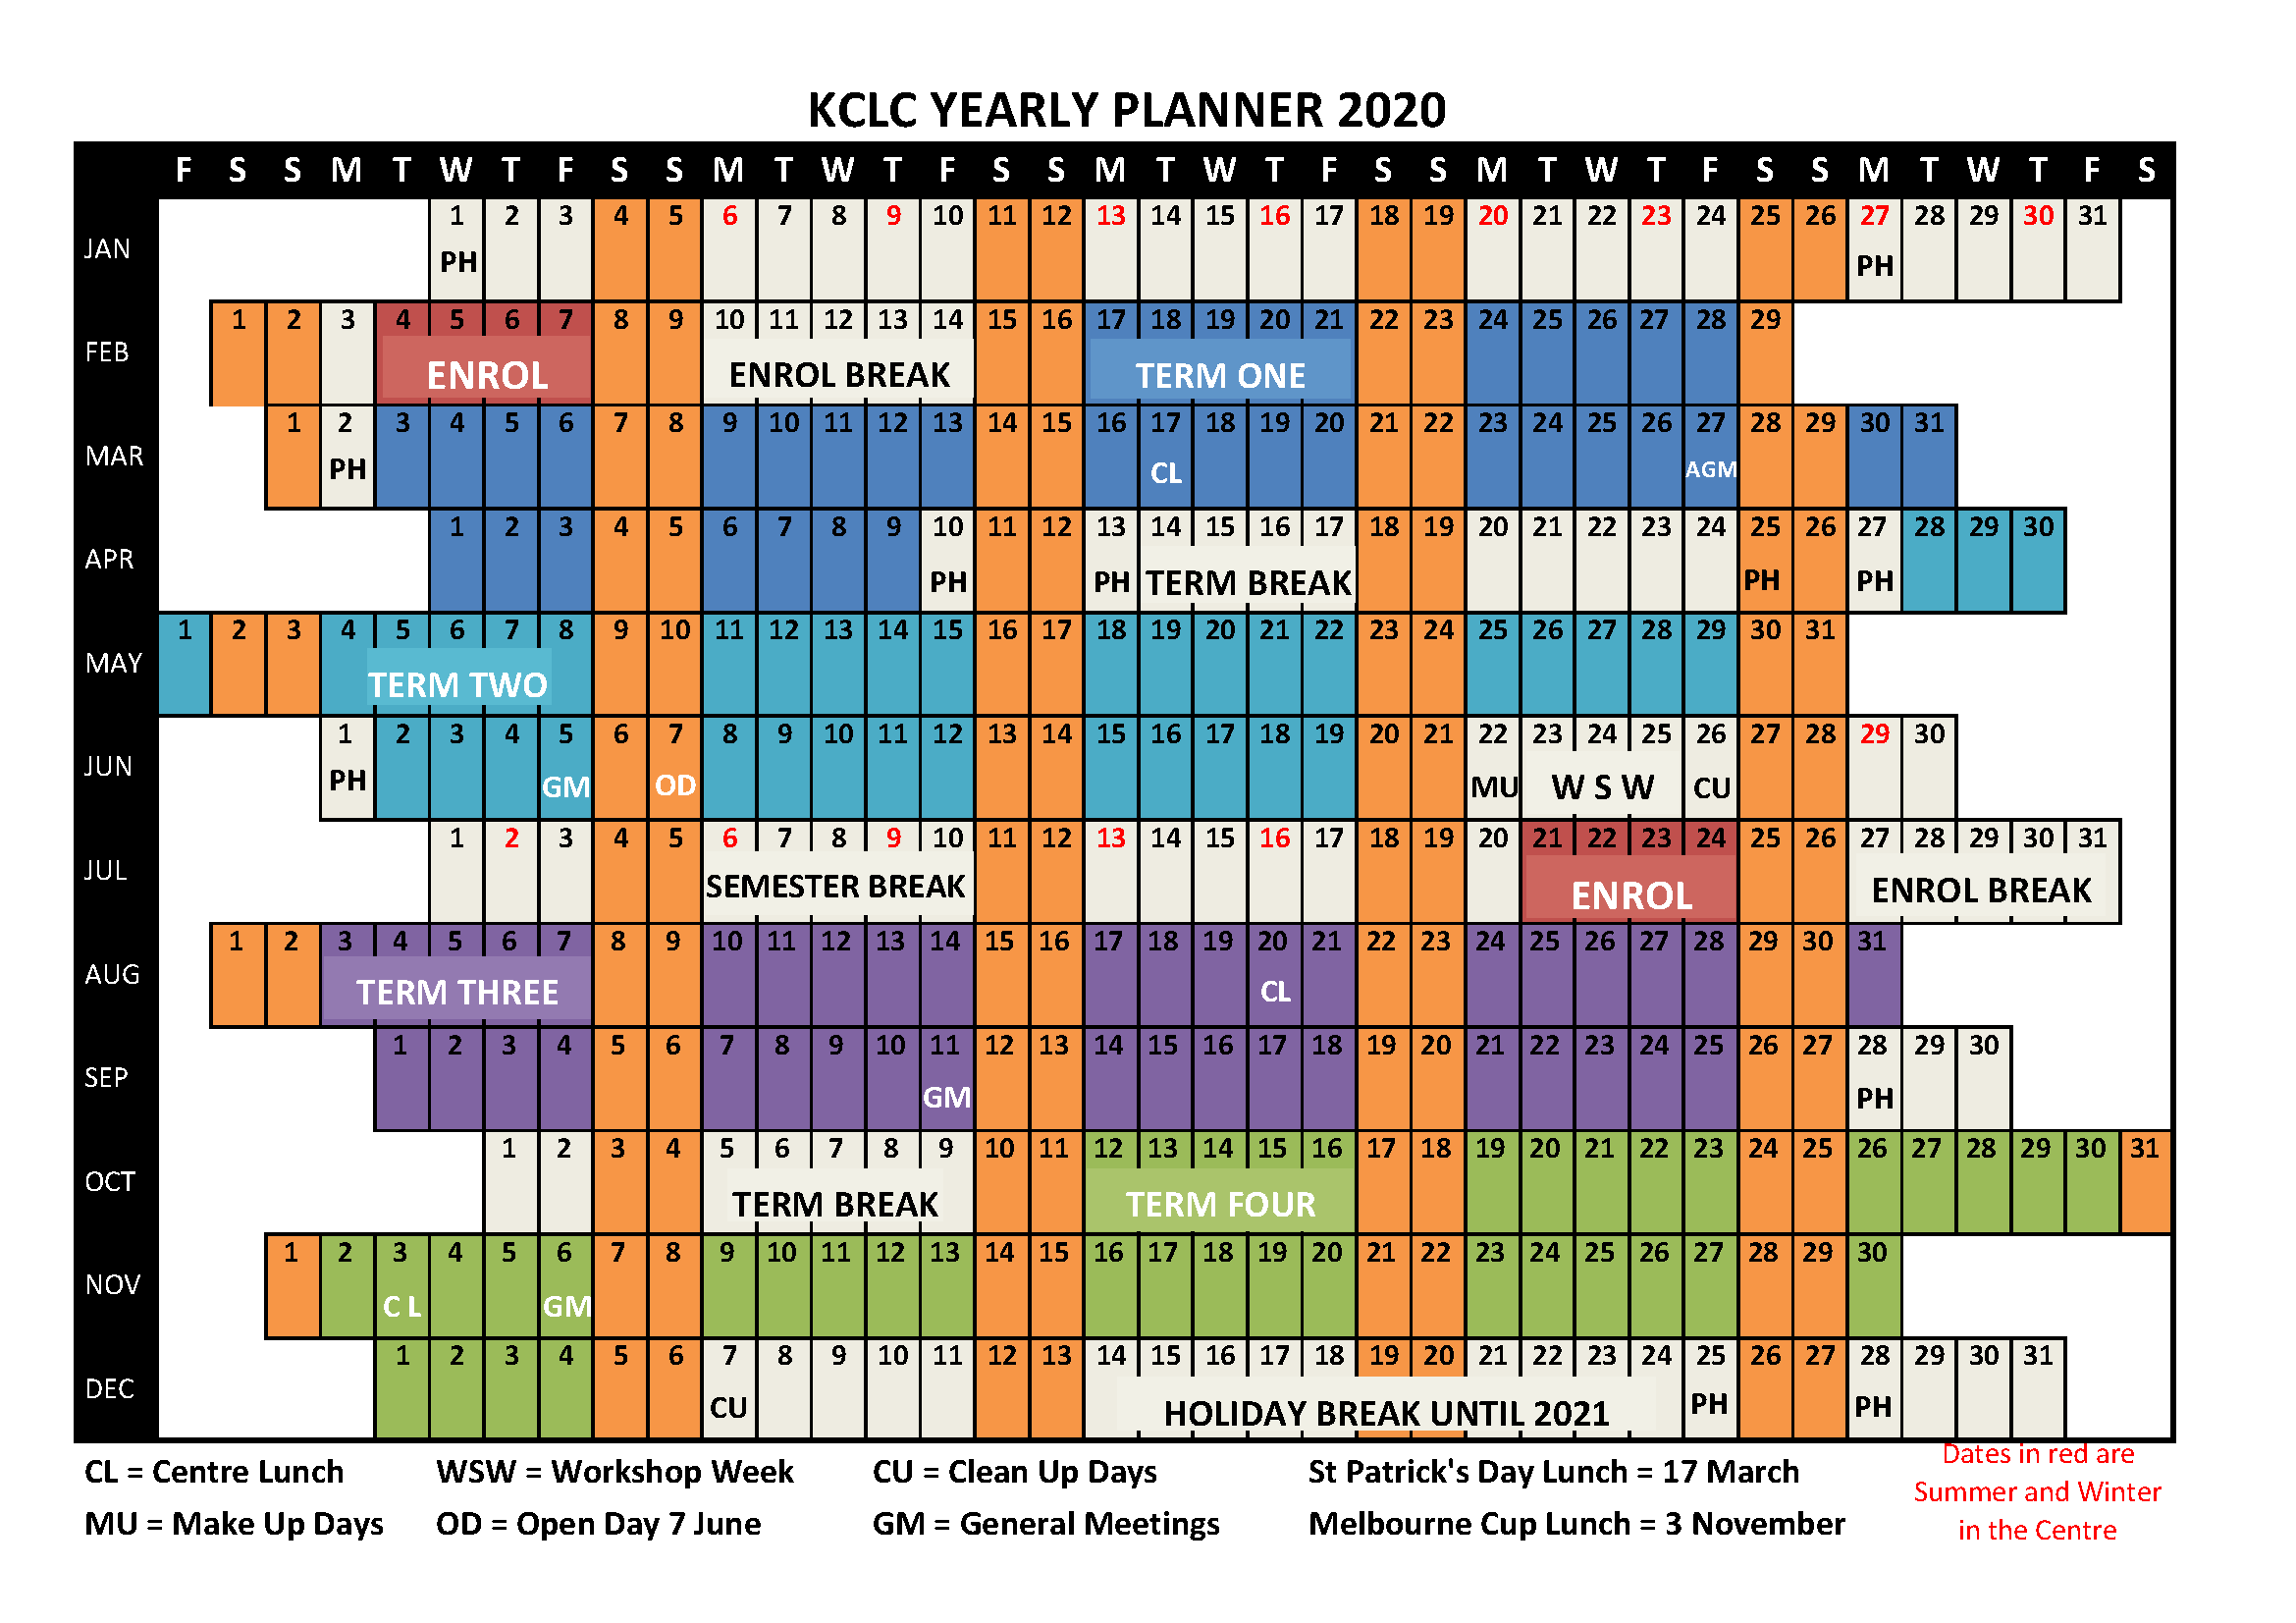 KCLC 2020 Yearly Planner